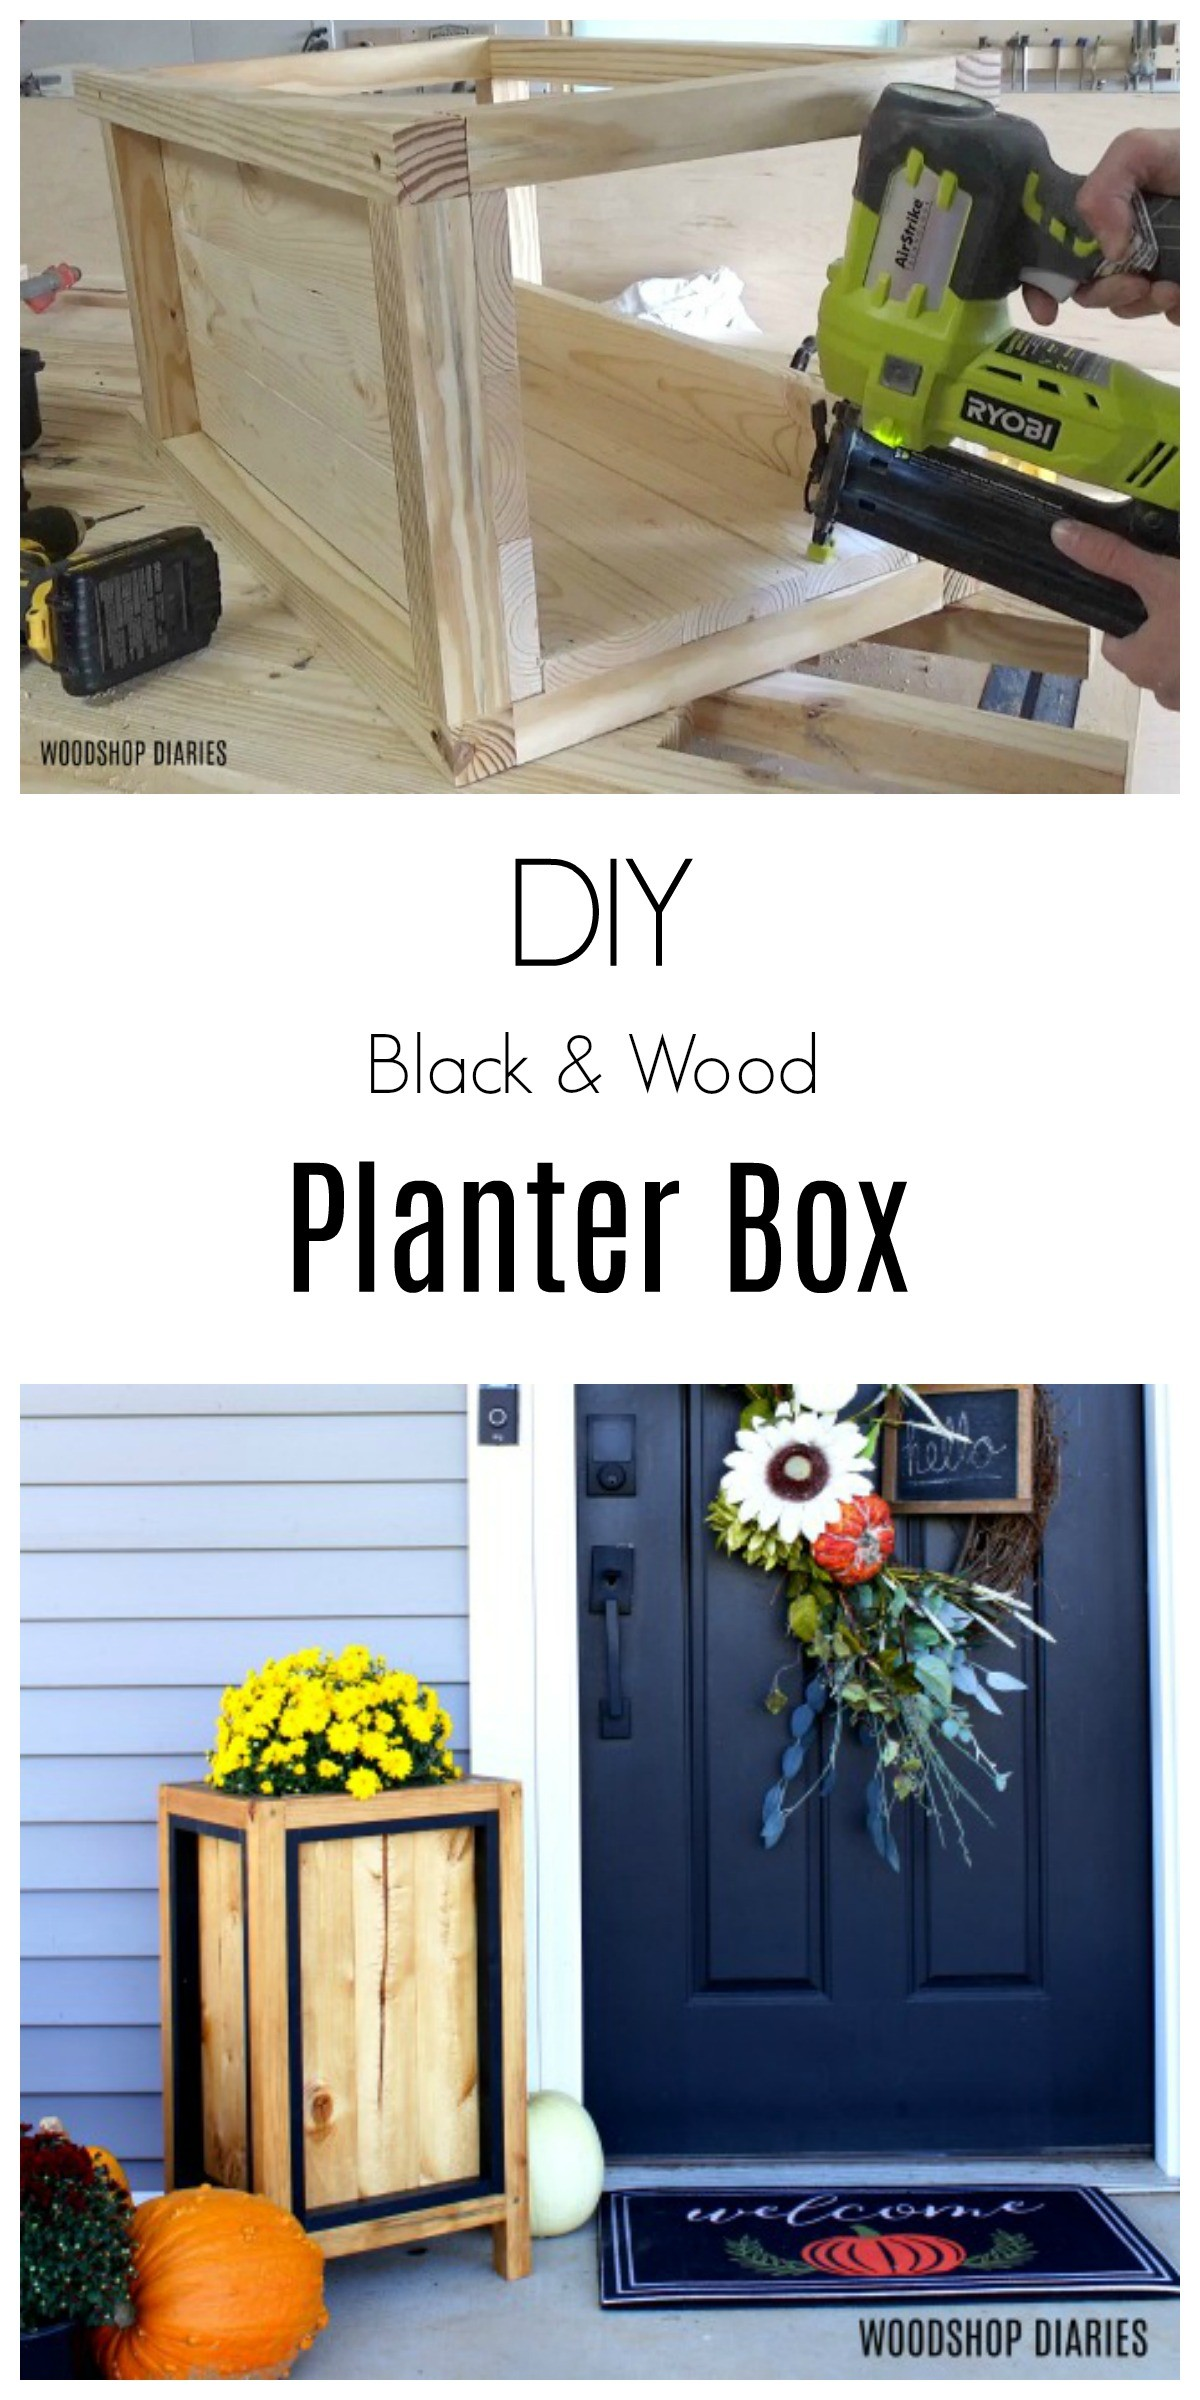 How to make a DIY planter box with black trim with a few tools and a few boards